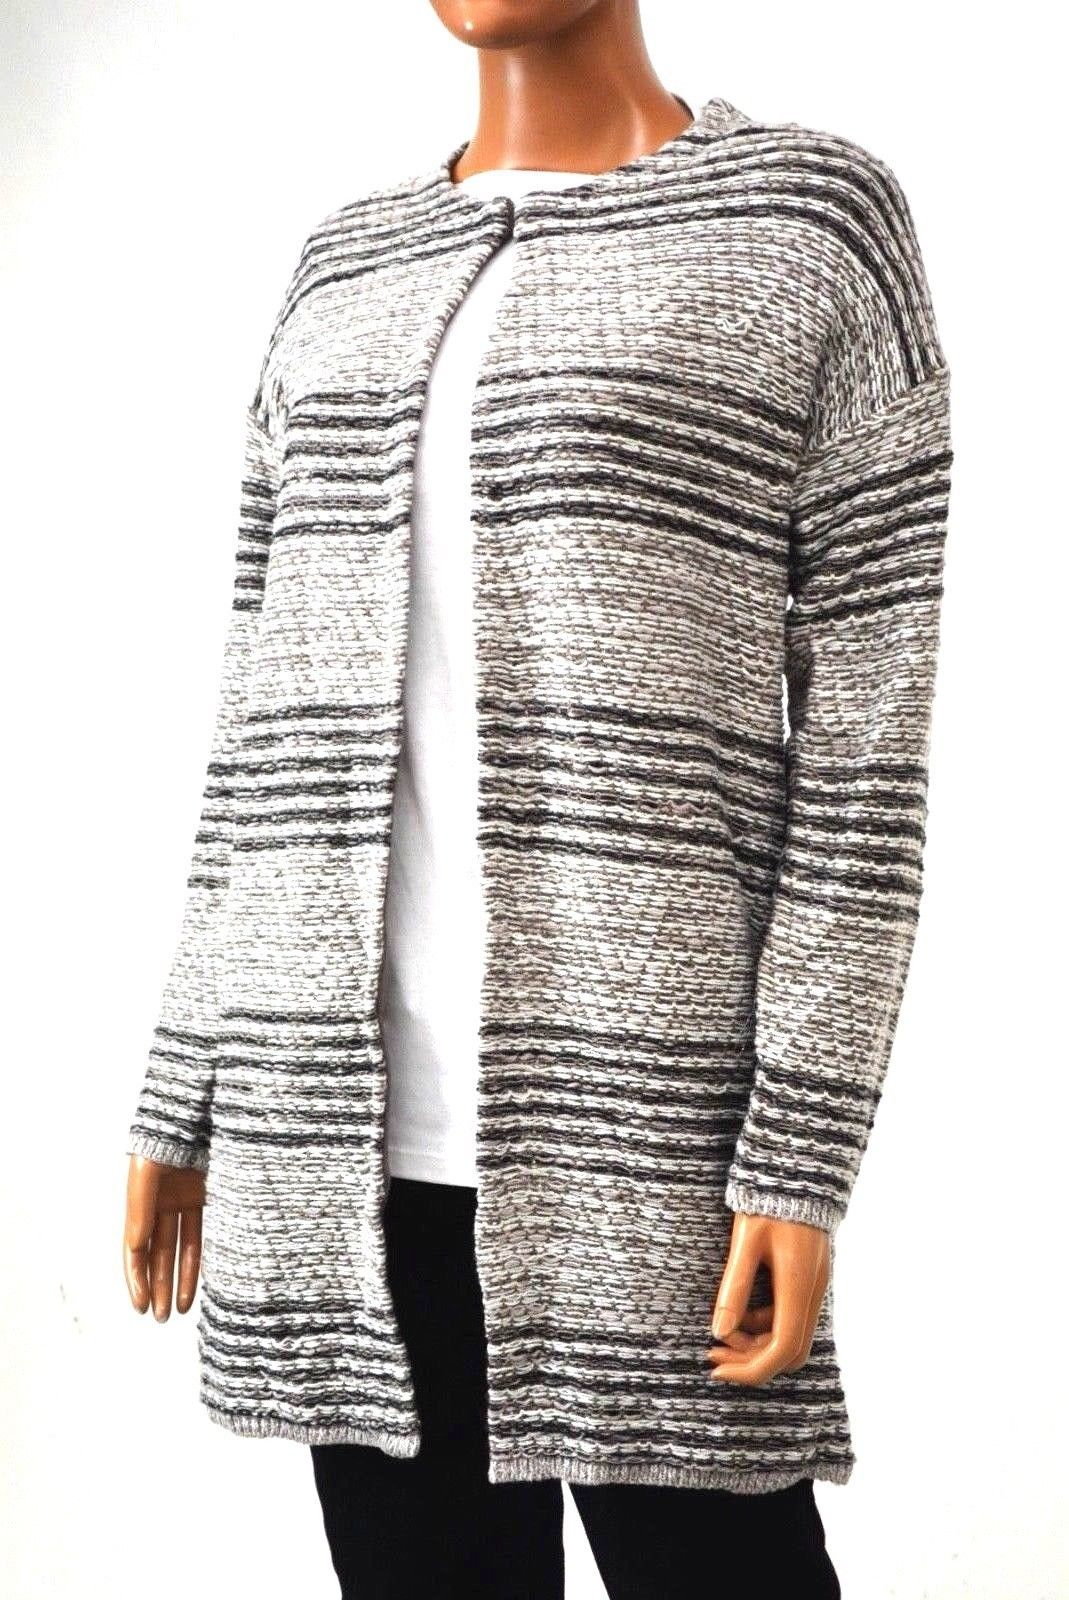 Cable Gauge Women's Metallic Gray Striped Cardigan Sweater Coat Top M